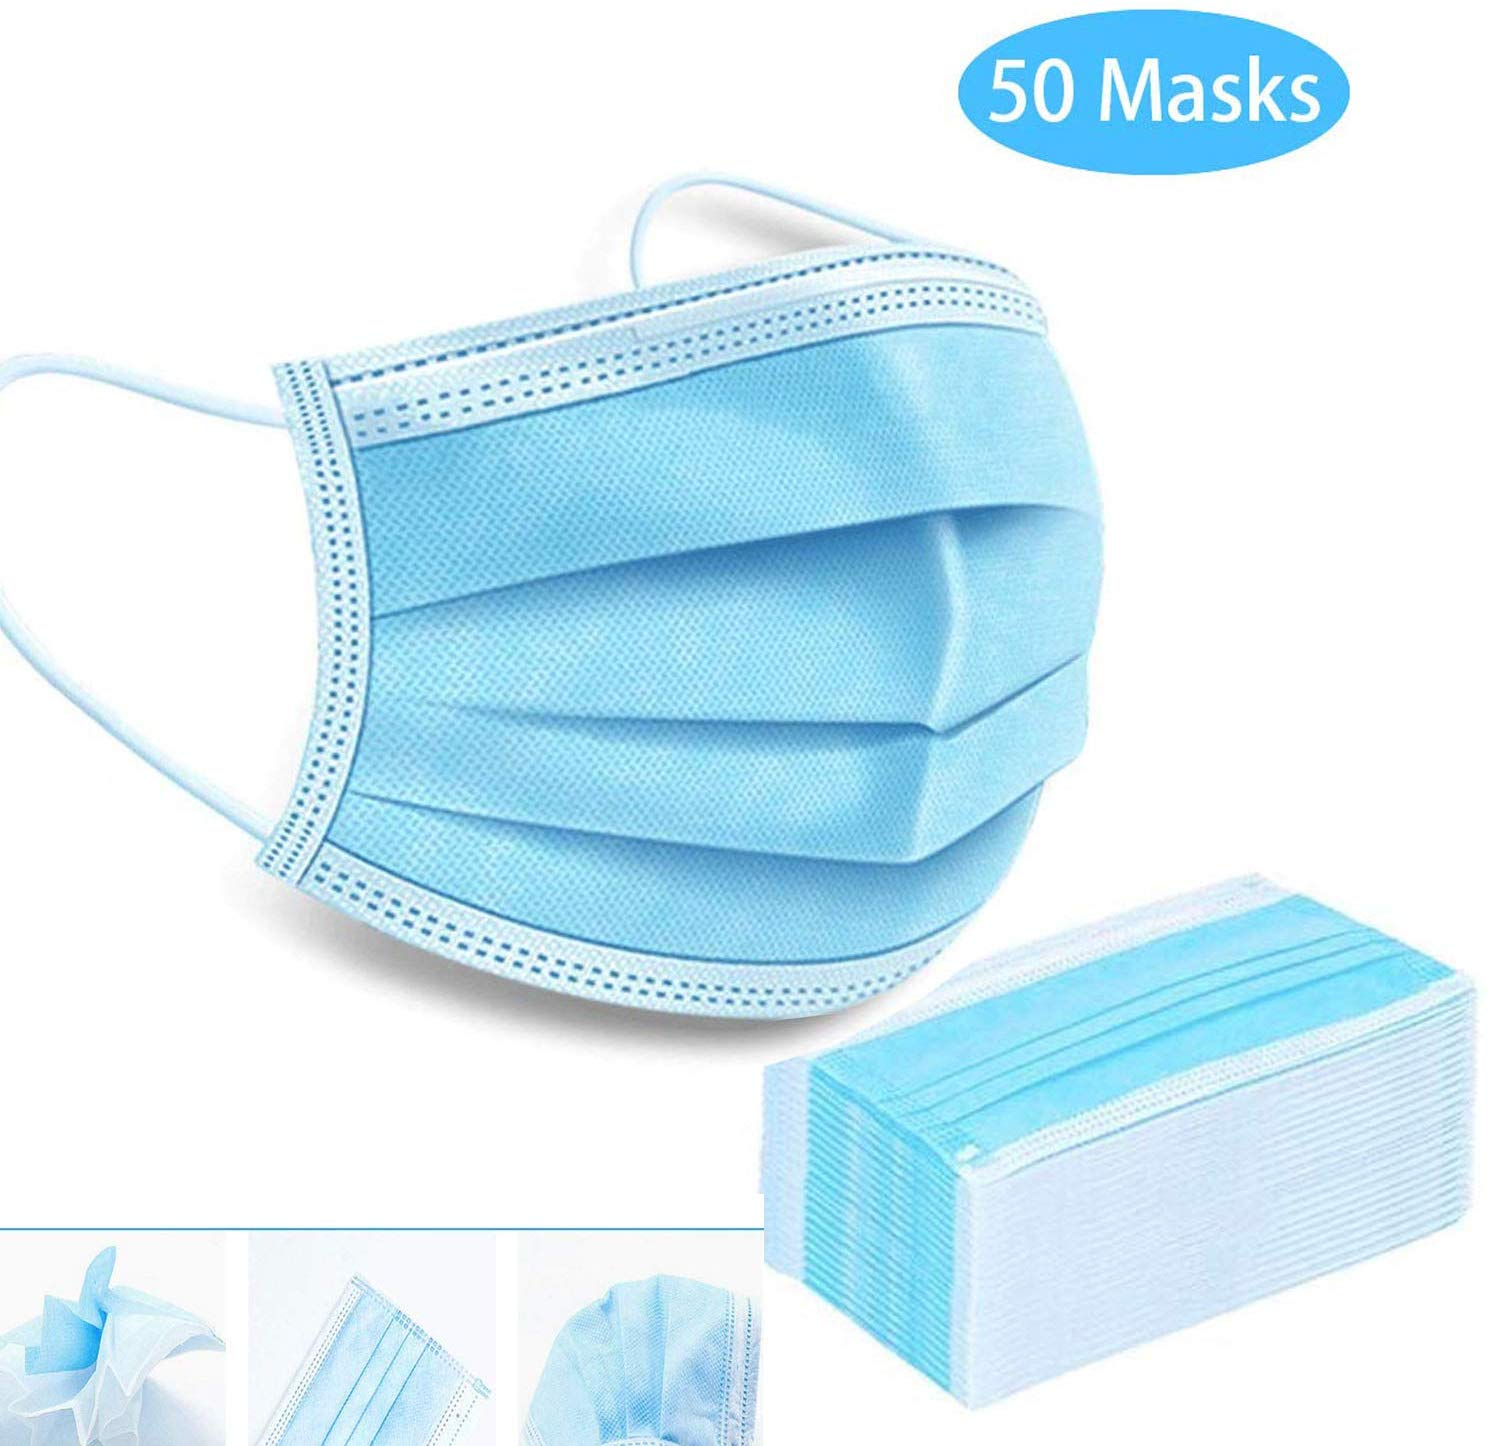 50 Pack Disposable 3-Ply Face mask - BLUE